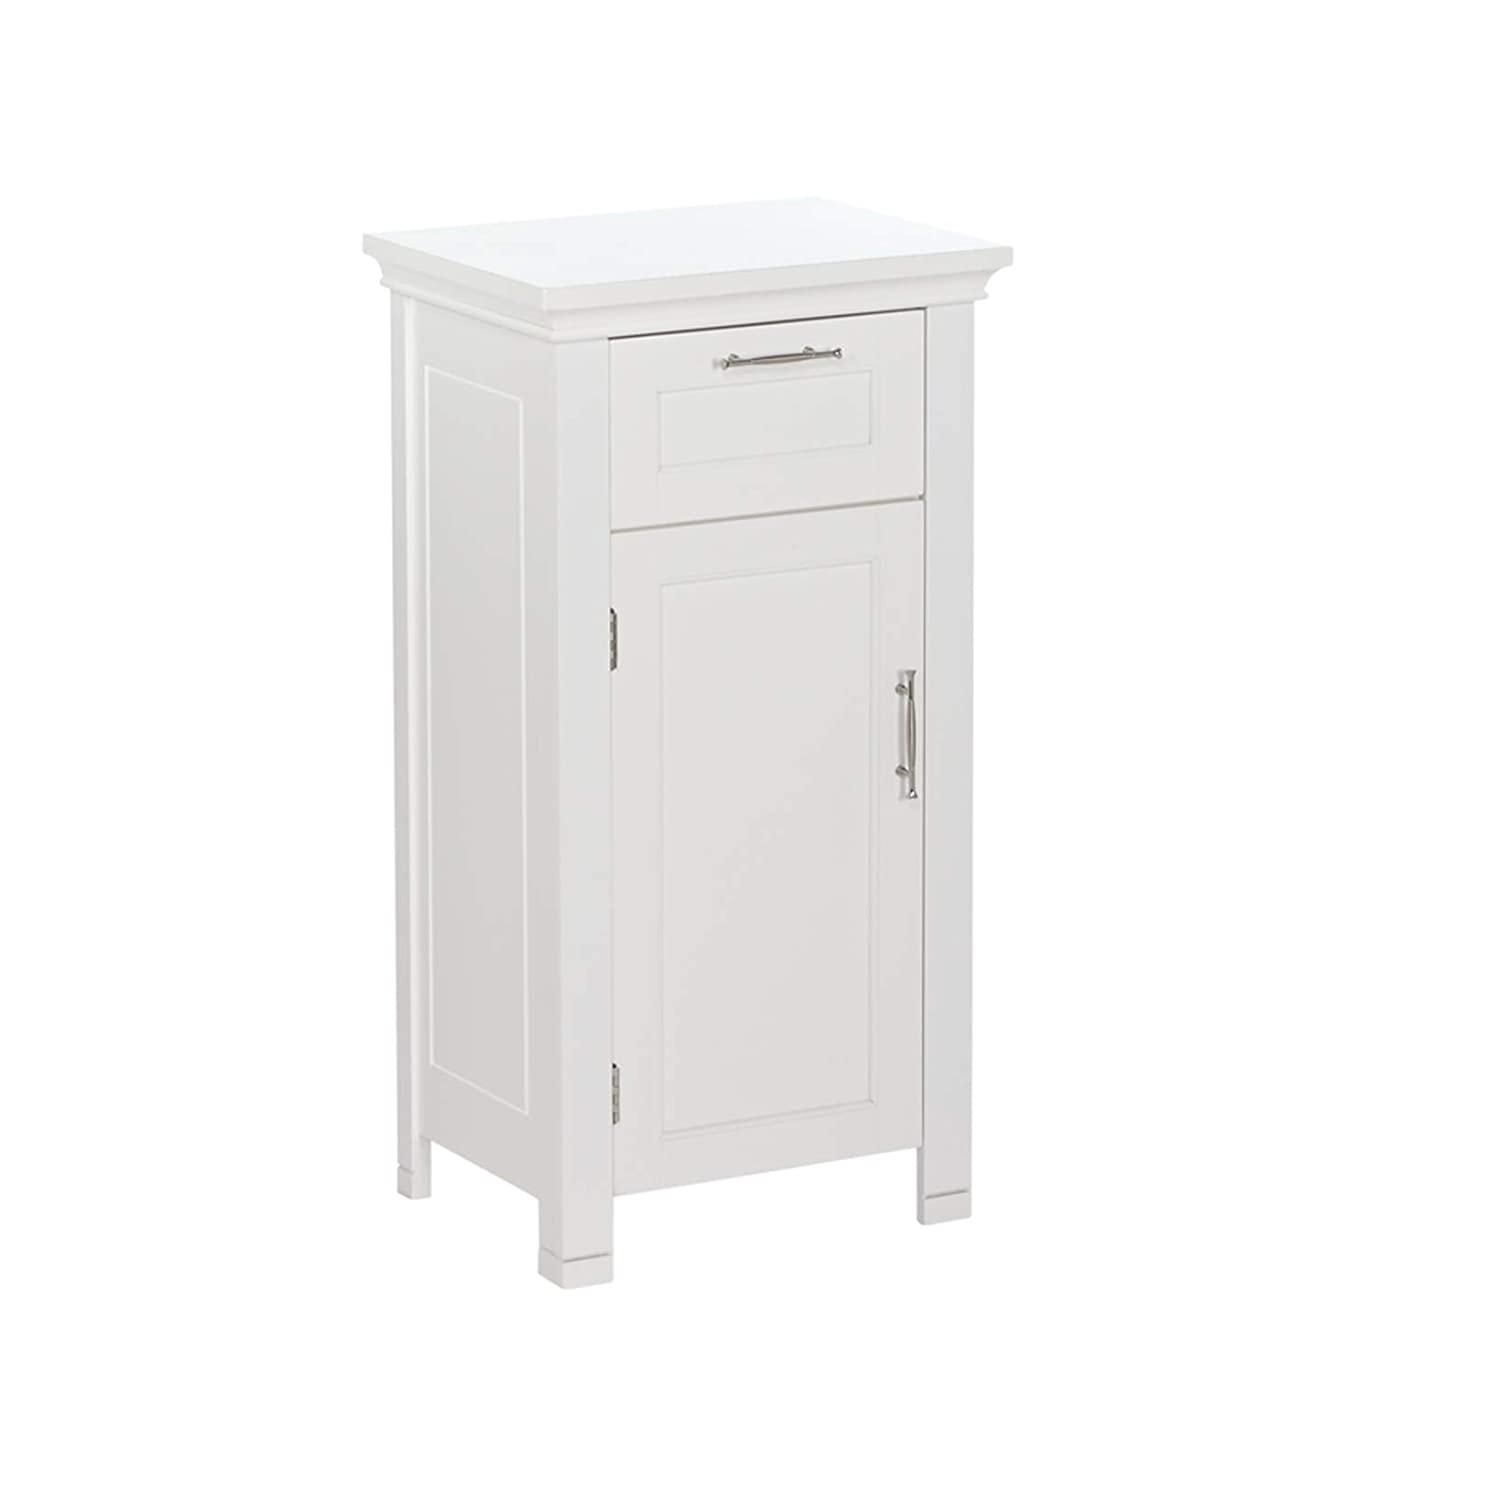 RiverRidge Somerset Collection Single Door Floor Cabinet, White